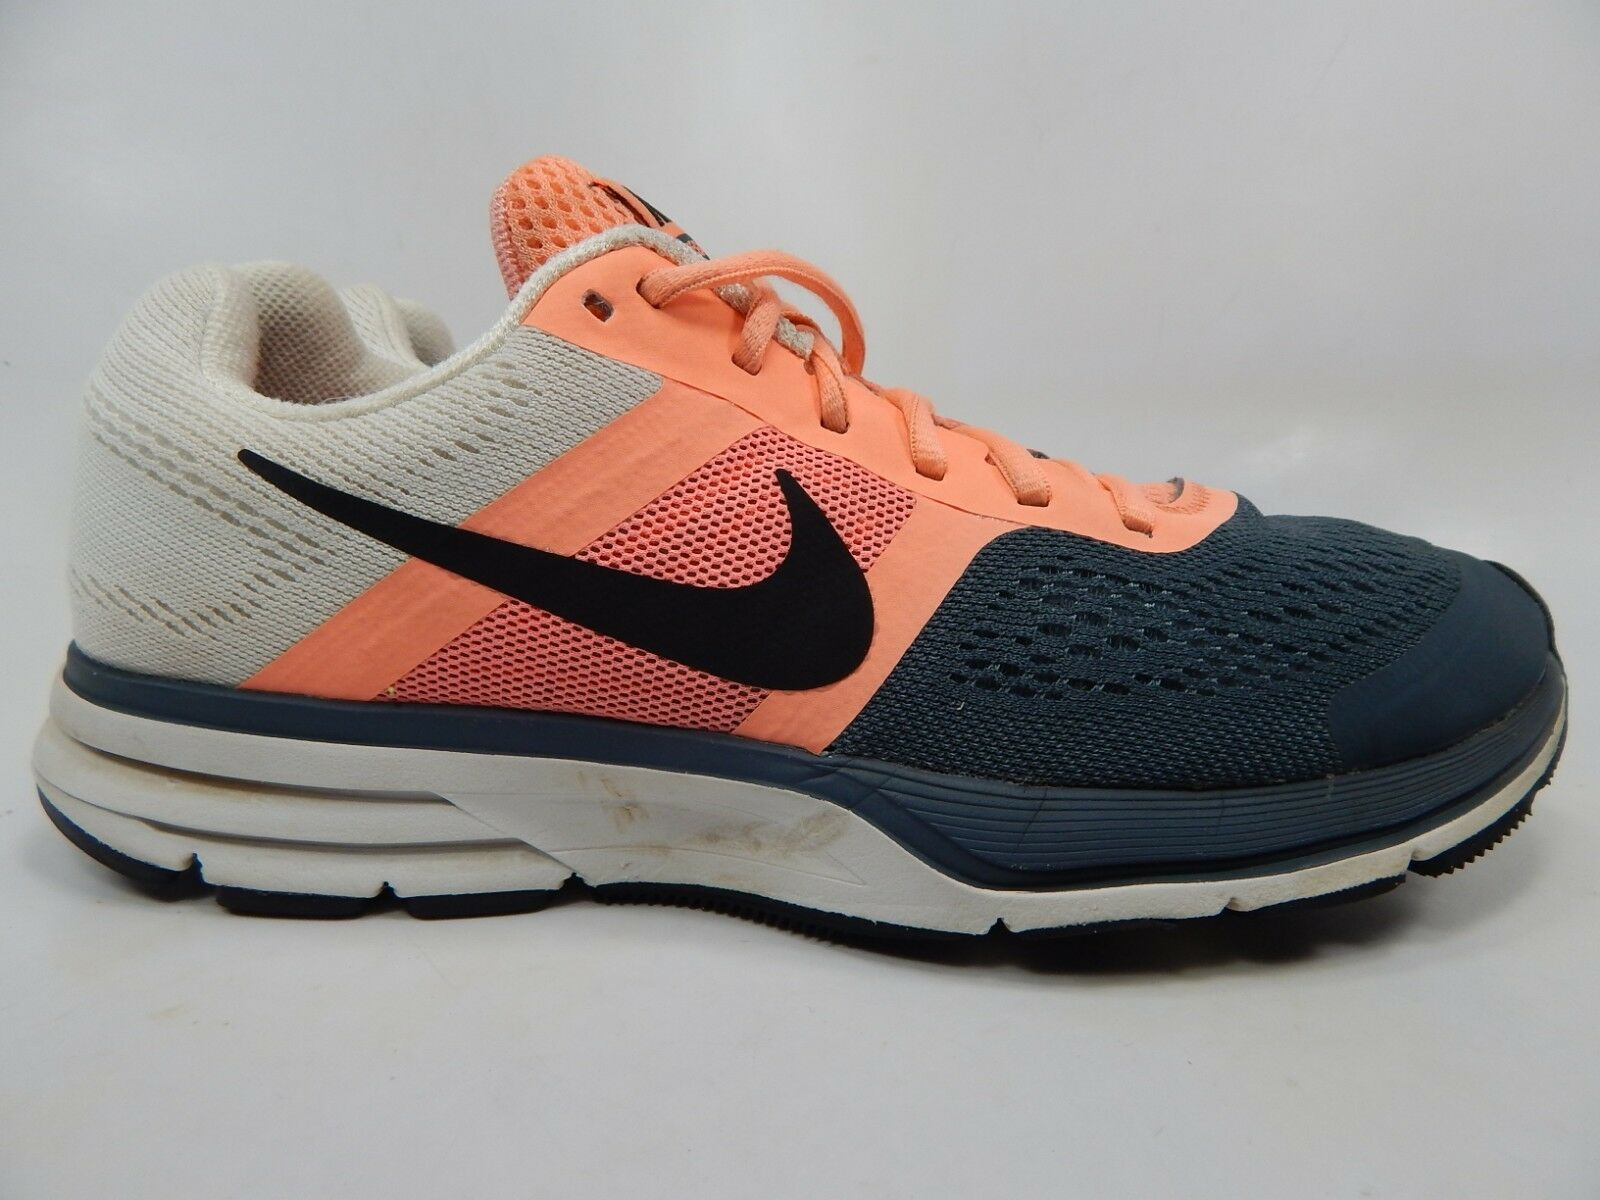 eaaf5ef0f Women s Nike Air Pegasus 30 Athletic Running Shoes 599392 Size 8 US ...